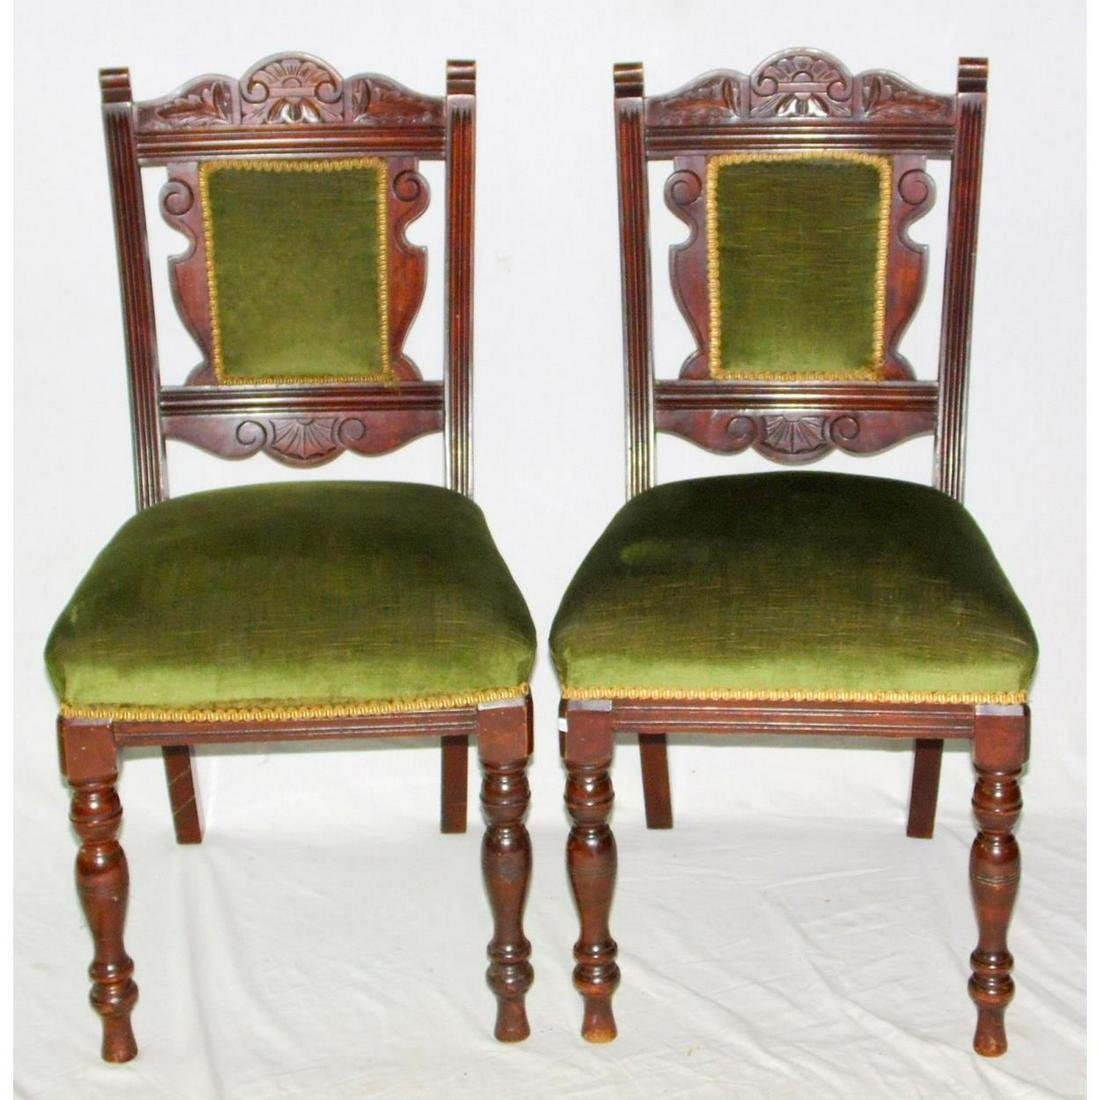 Edwardian Pair of Mahogany Side Chairs c.1910